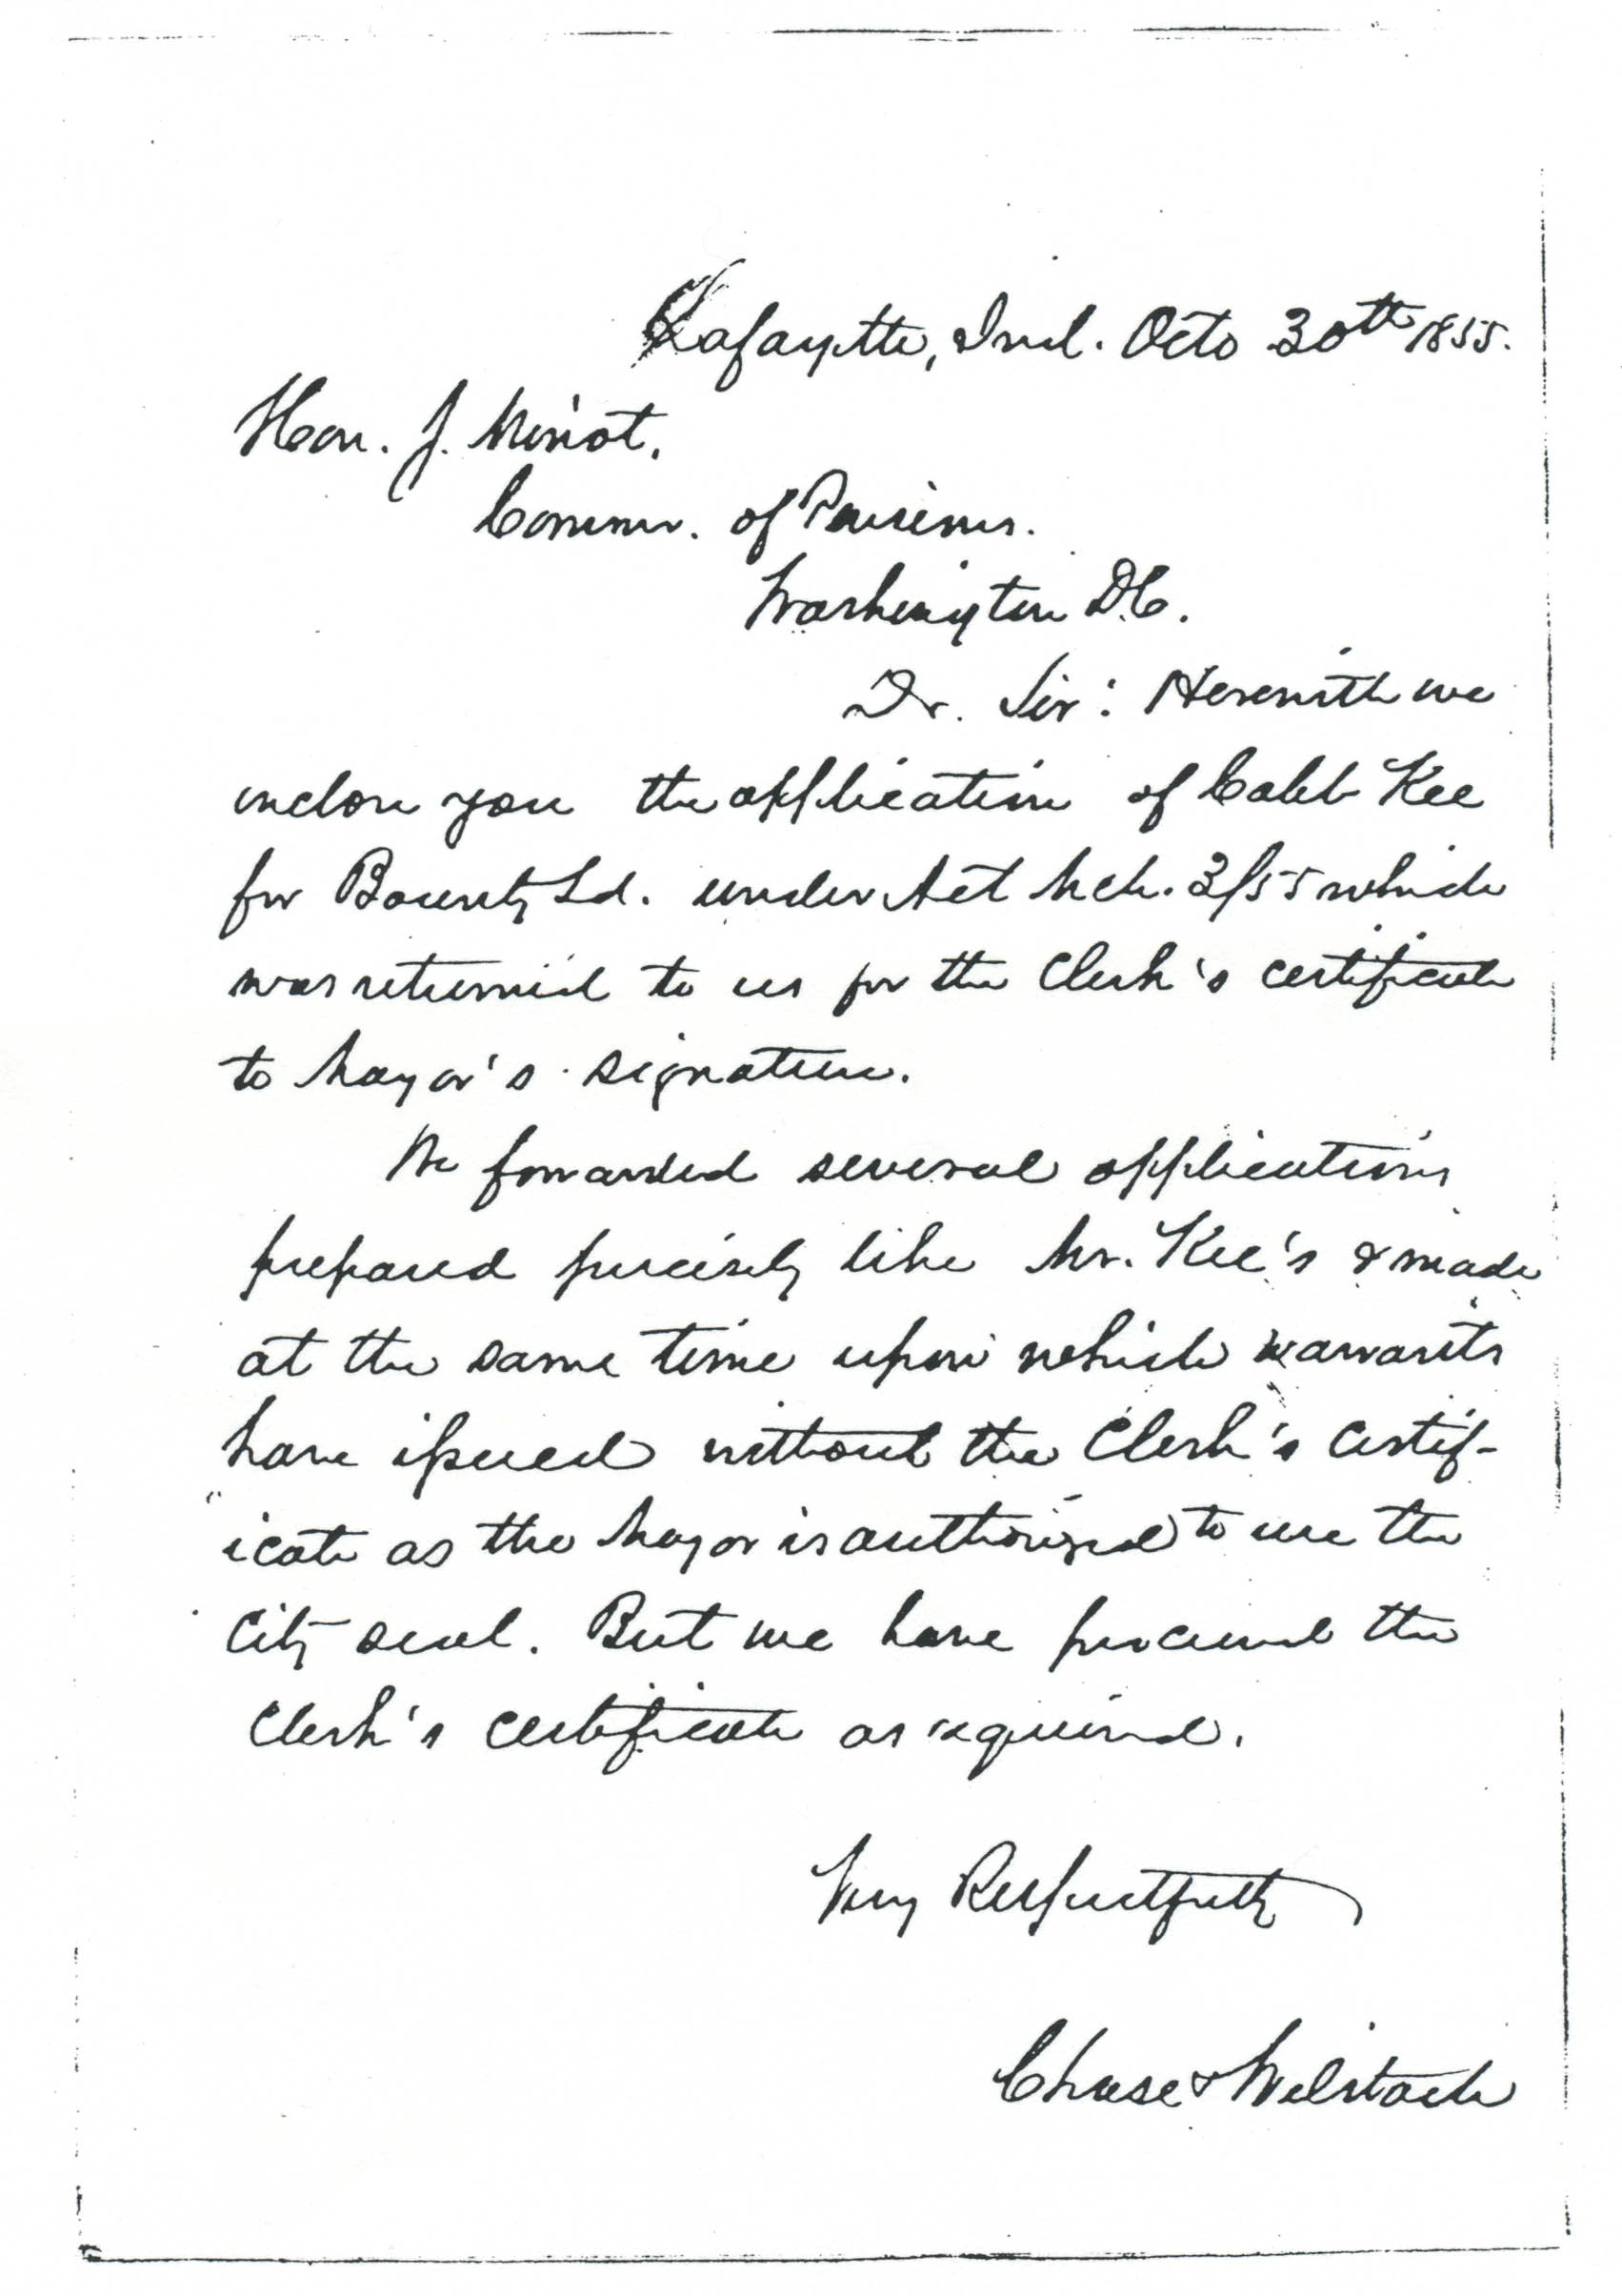 Caleb Kee Key War Of Pension File From East To West